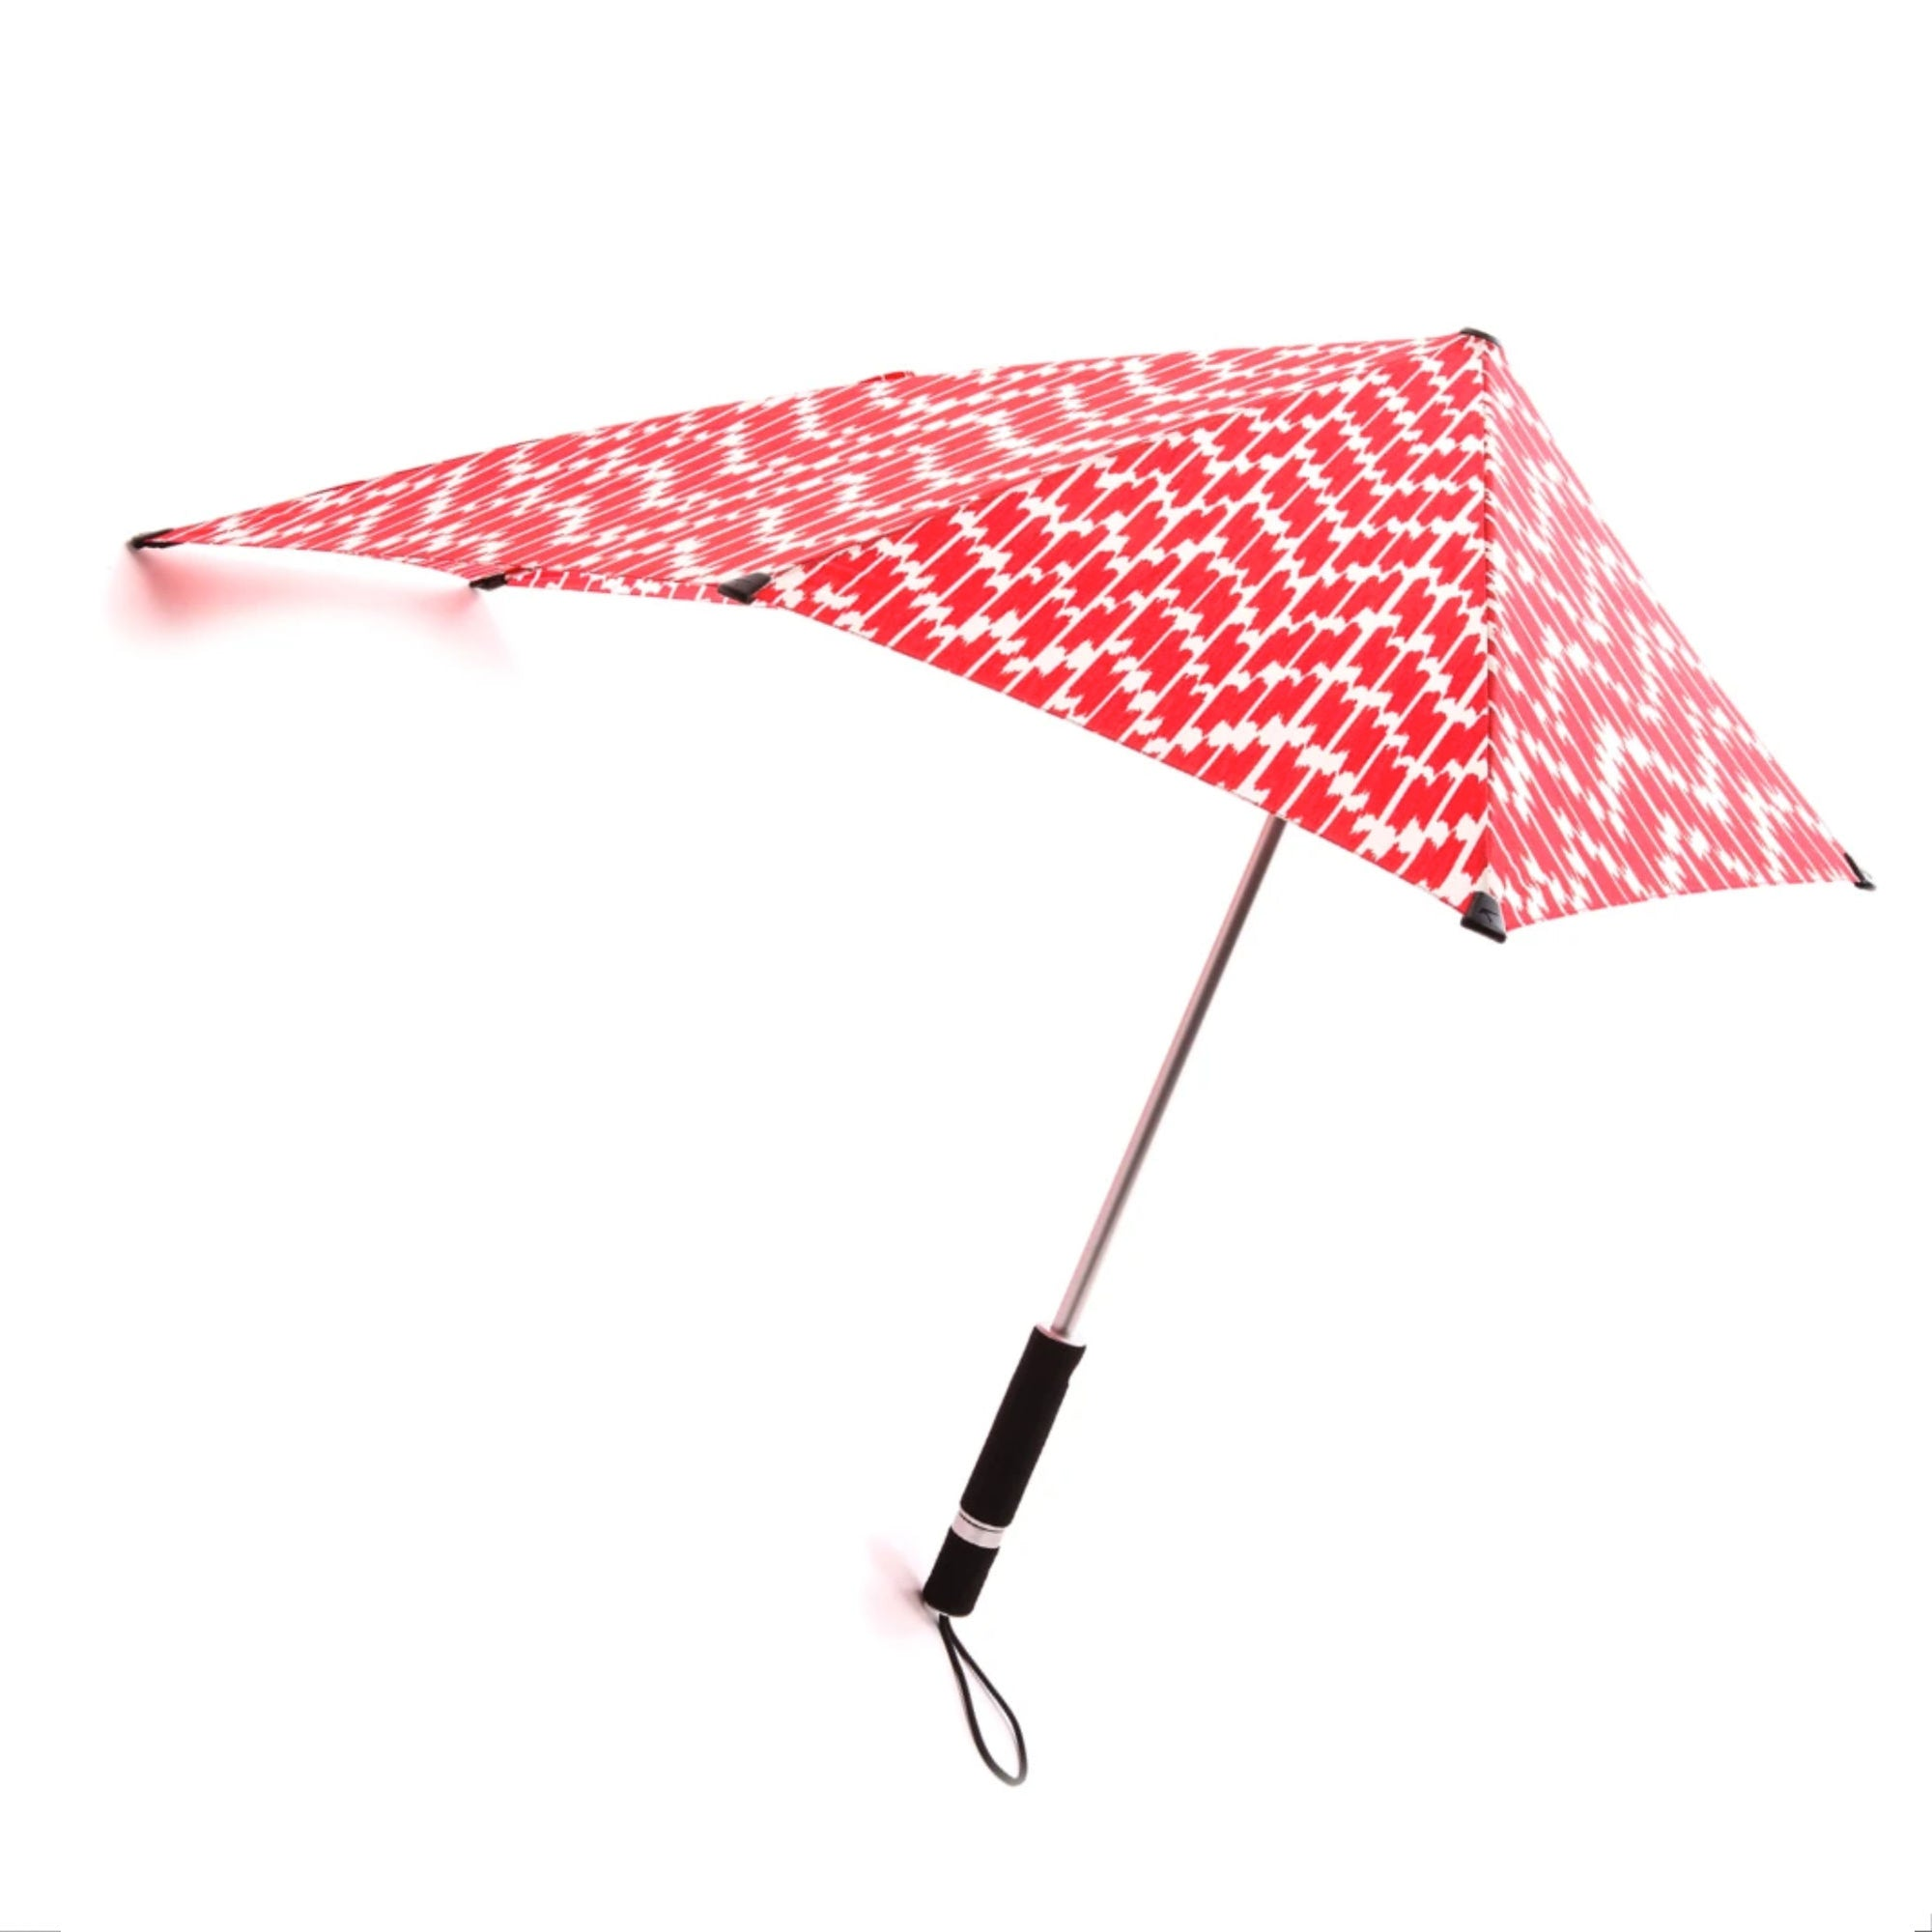 Senz° Original storm umbrella, ikat red